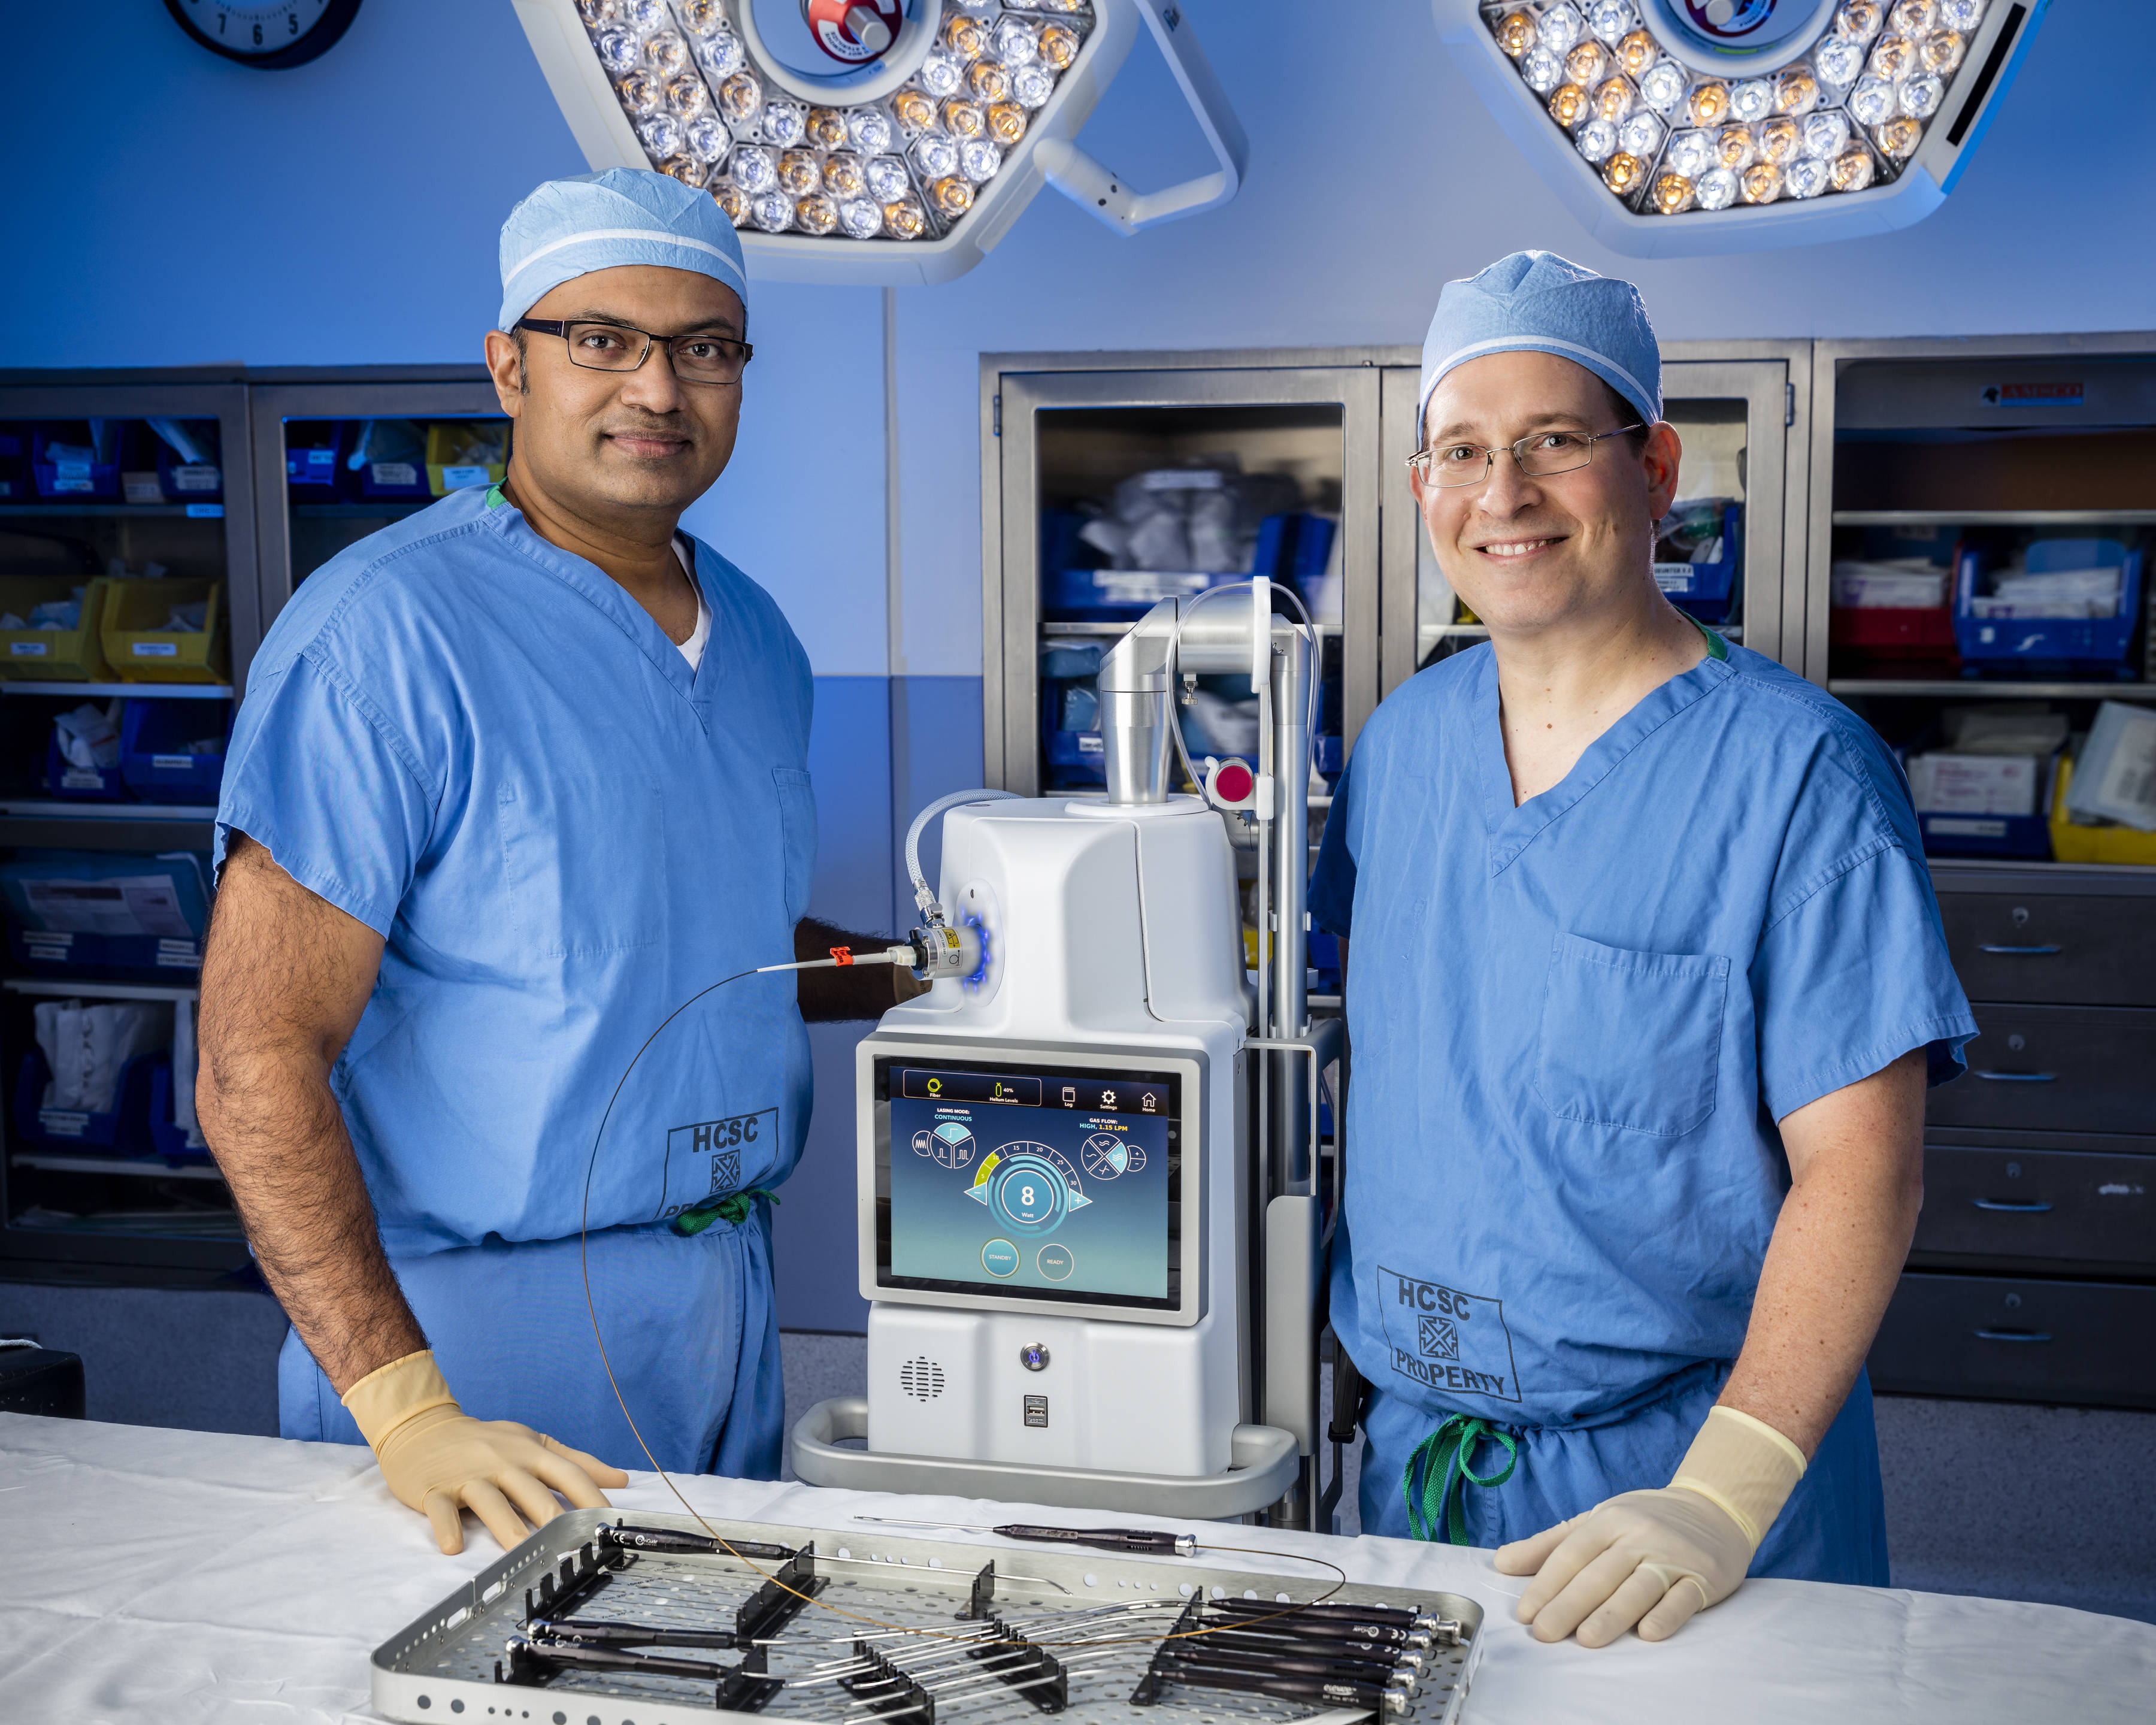 Dr Thomas and Dr. Cohen with Beacon laser AHS-0694master.jpg